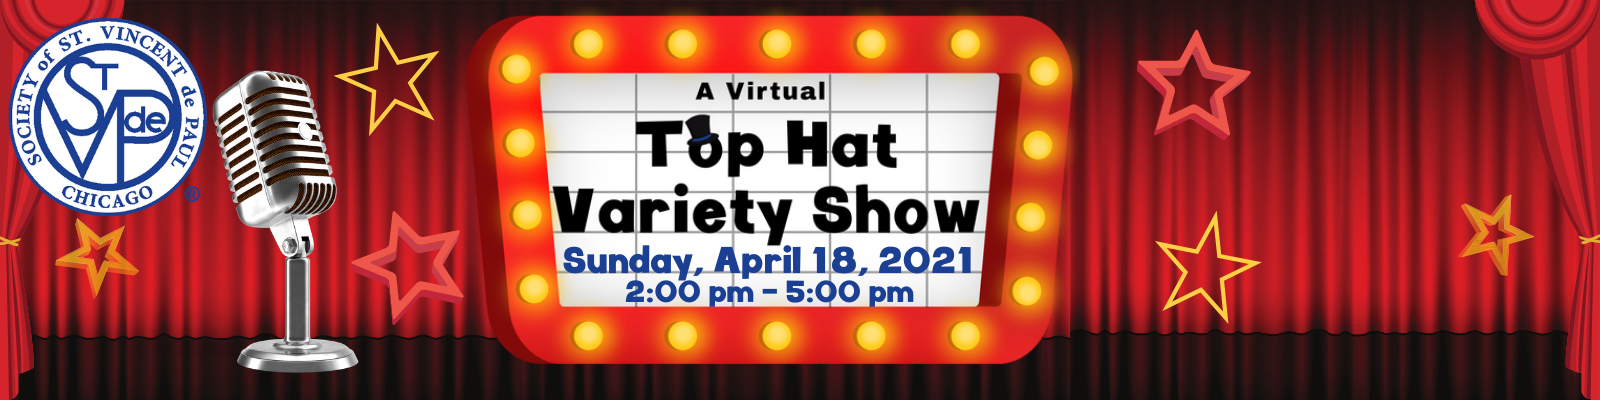 Support SVdP Chicago's Top Hat Variety Show image